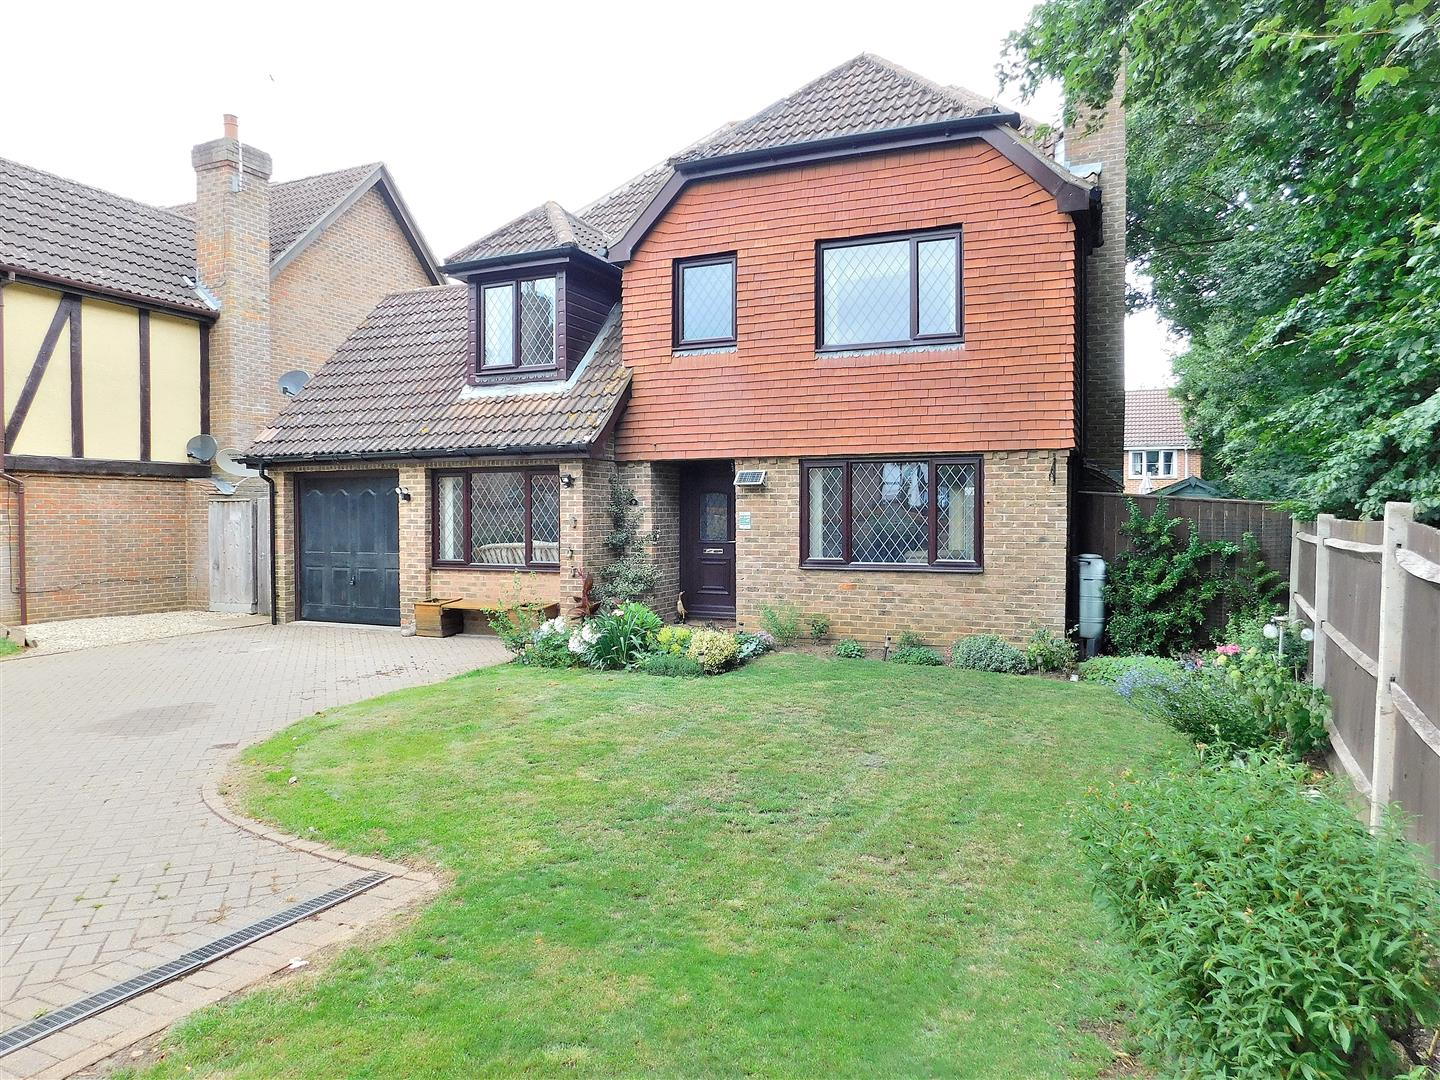 4 bed detached house for sale in King's Lynn, PE33 0EG 0